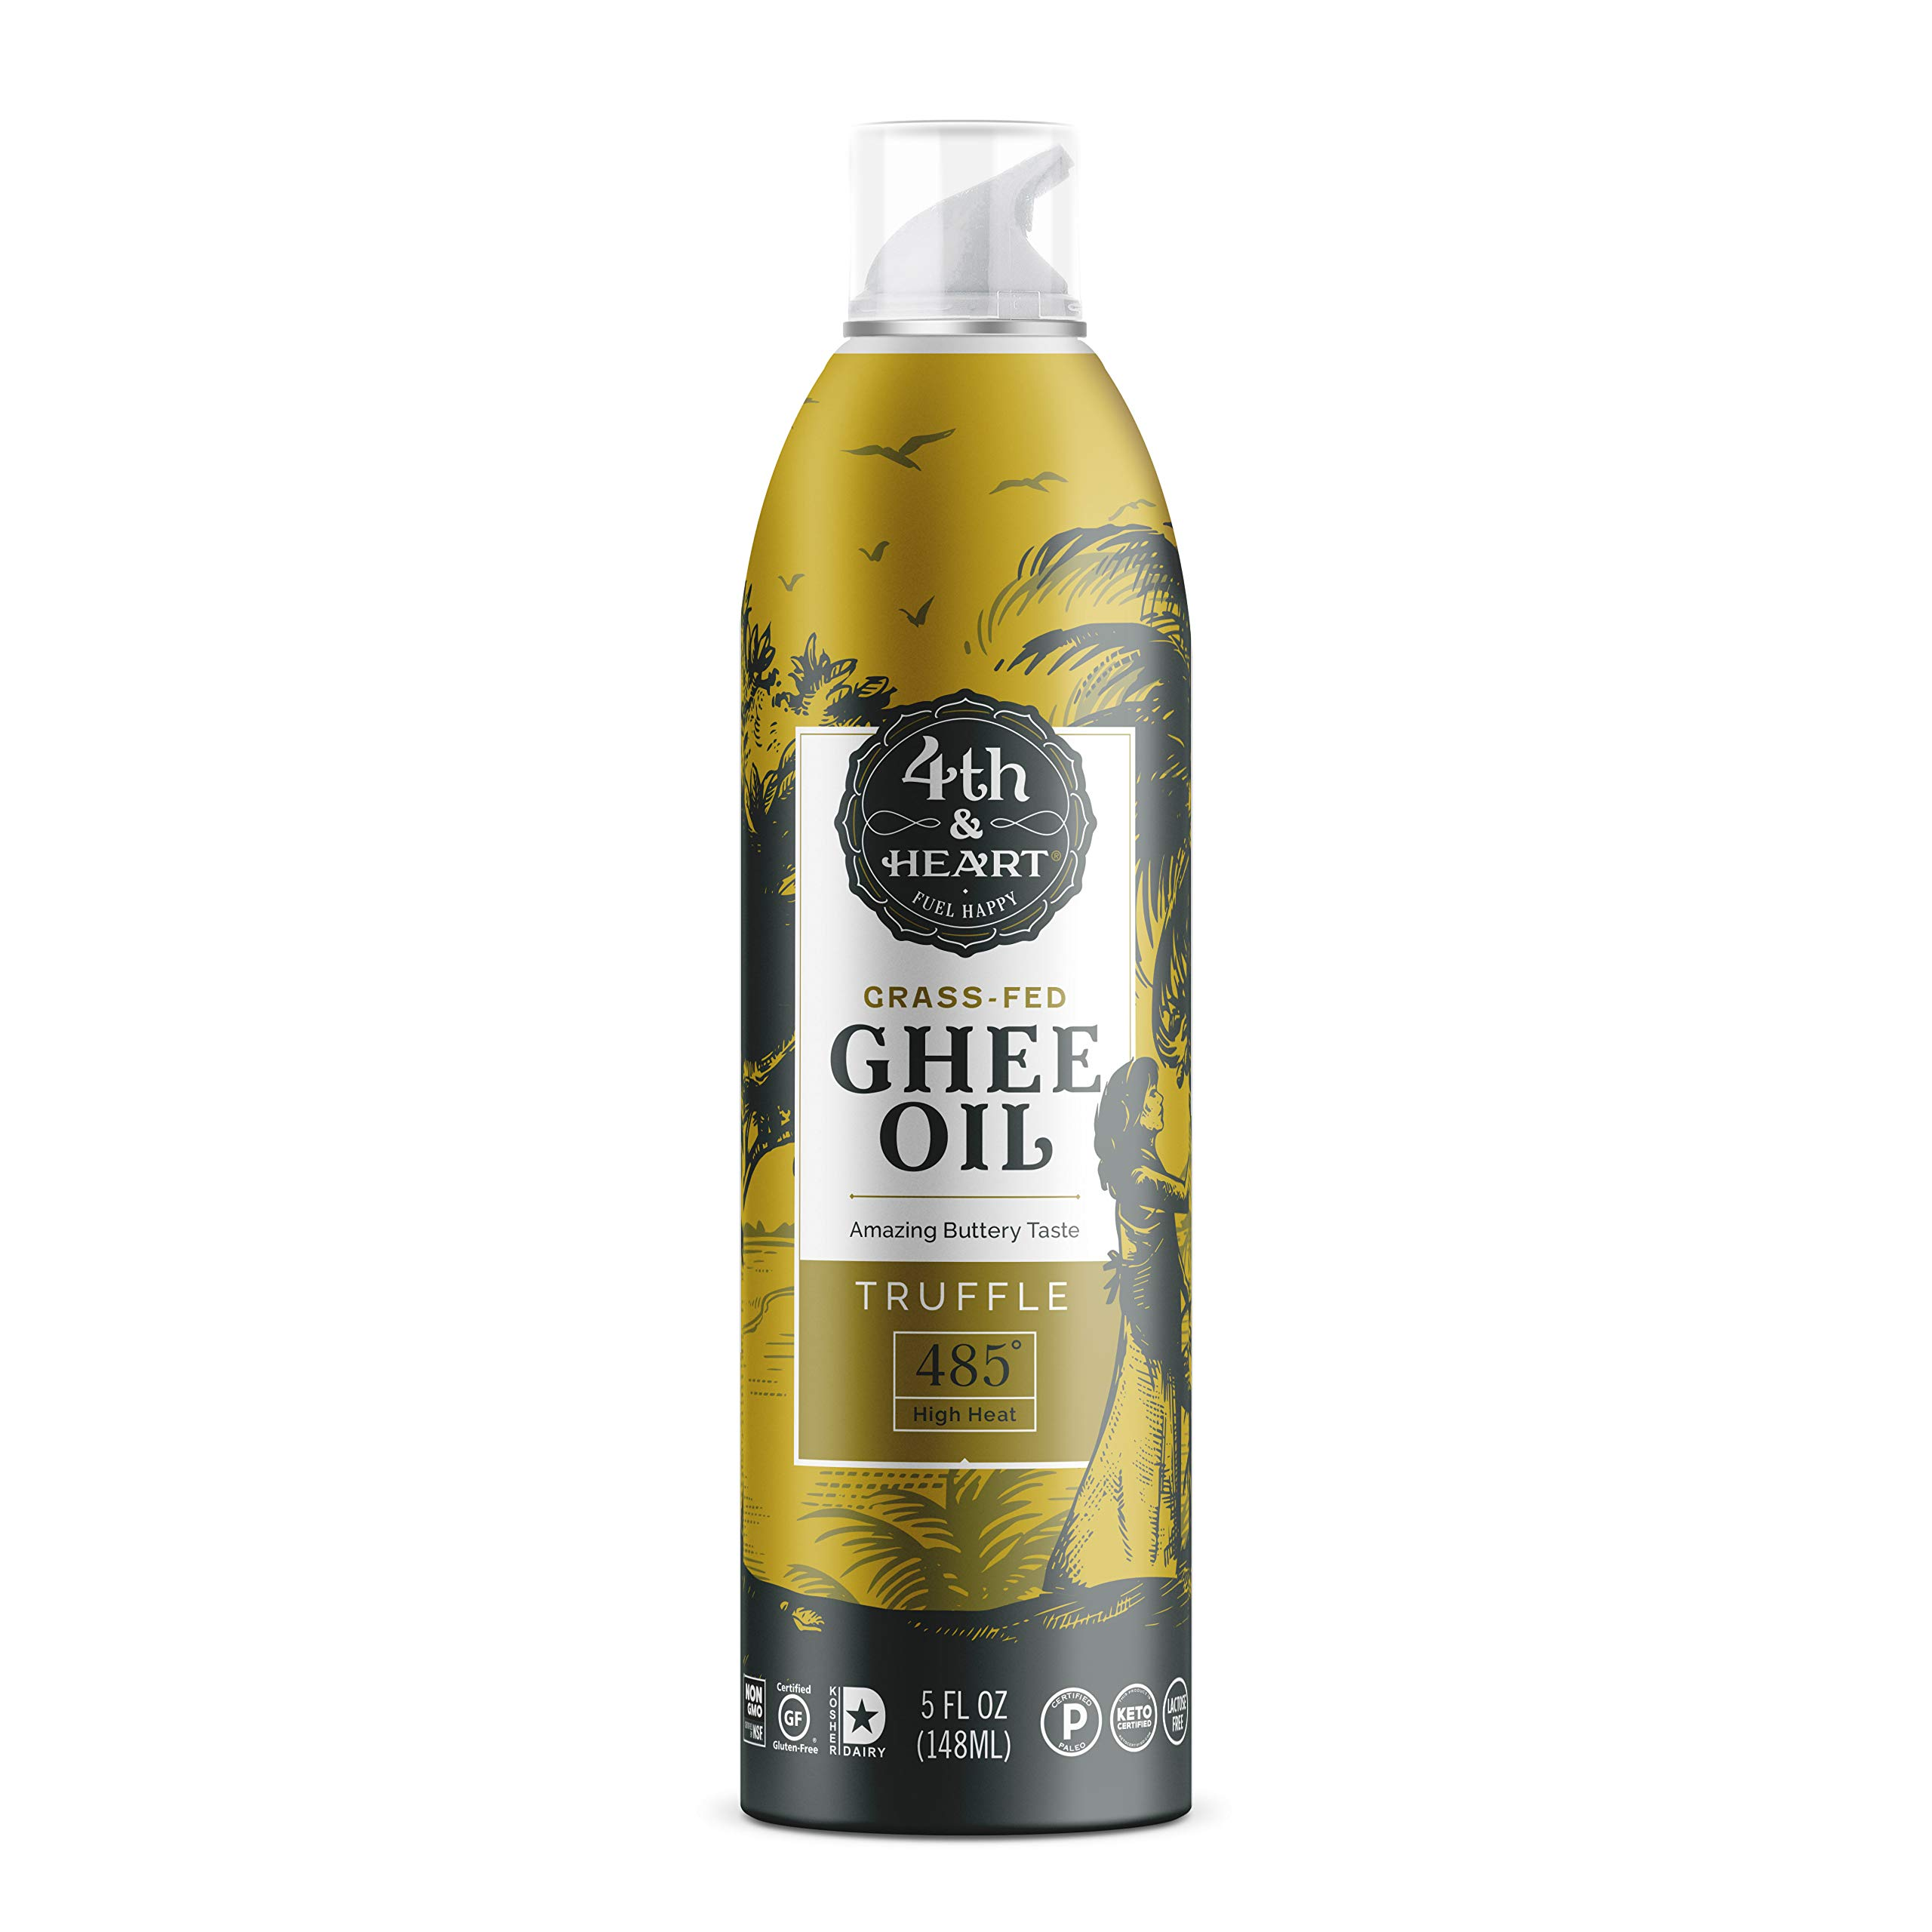 Truffle Grass-Fed Ghee Oil Cooking Spray by 4th & Heart, High Heat, Non-GMO Verified Hybrid Oil, Certified Paleo and Keto, Lactose Free, 5 ounce by 4th & Heart